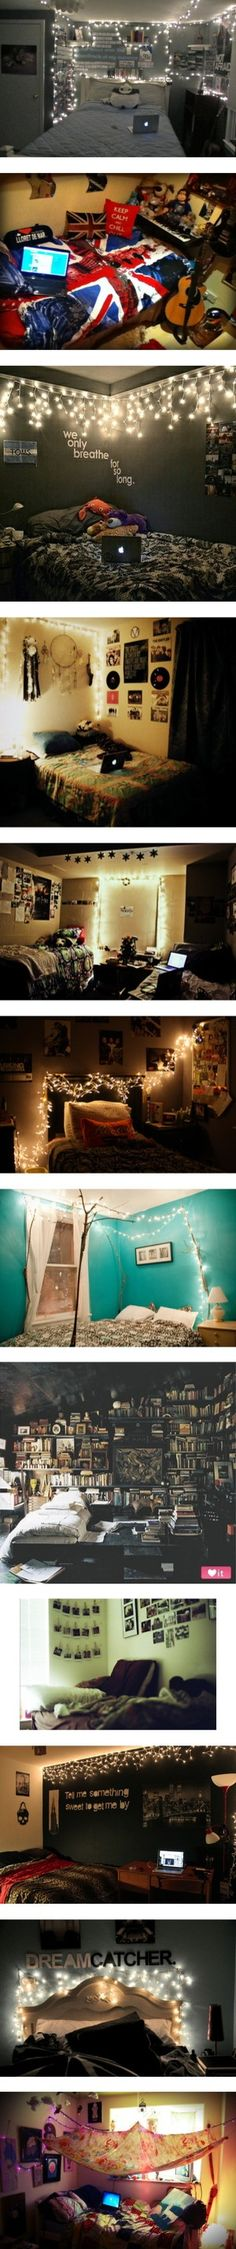 Indie/Hipster Bedroom Inspiration by for-the-love-of-tips ... I like the 1one ,2 one , 3 one and the 10 one